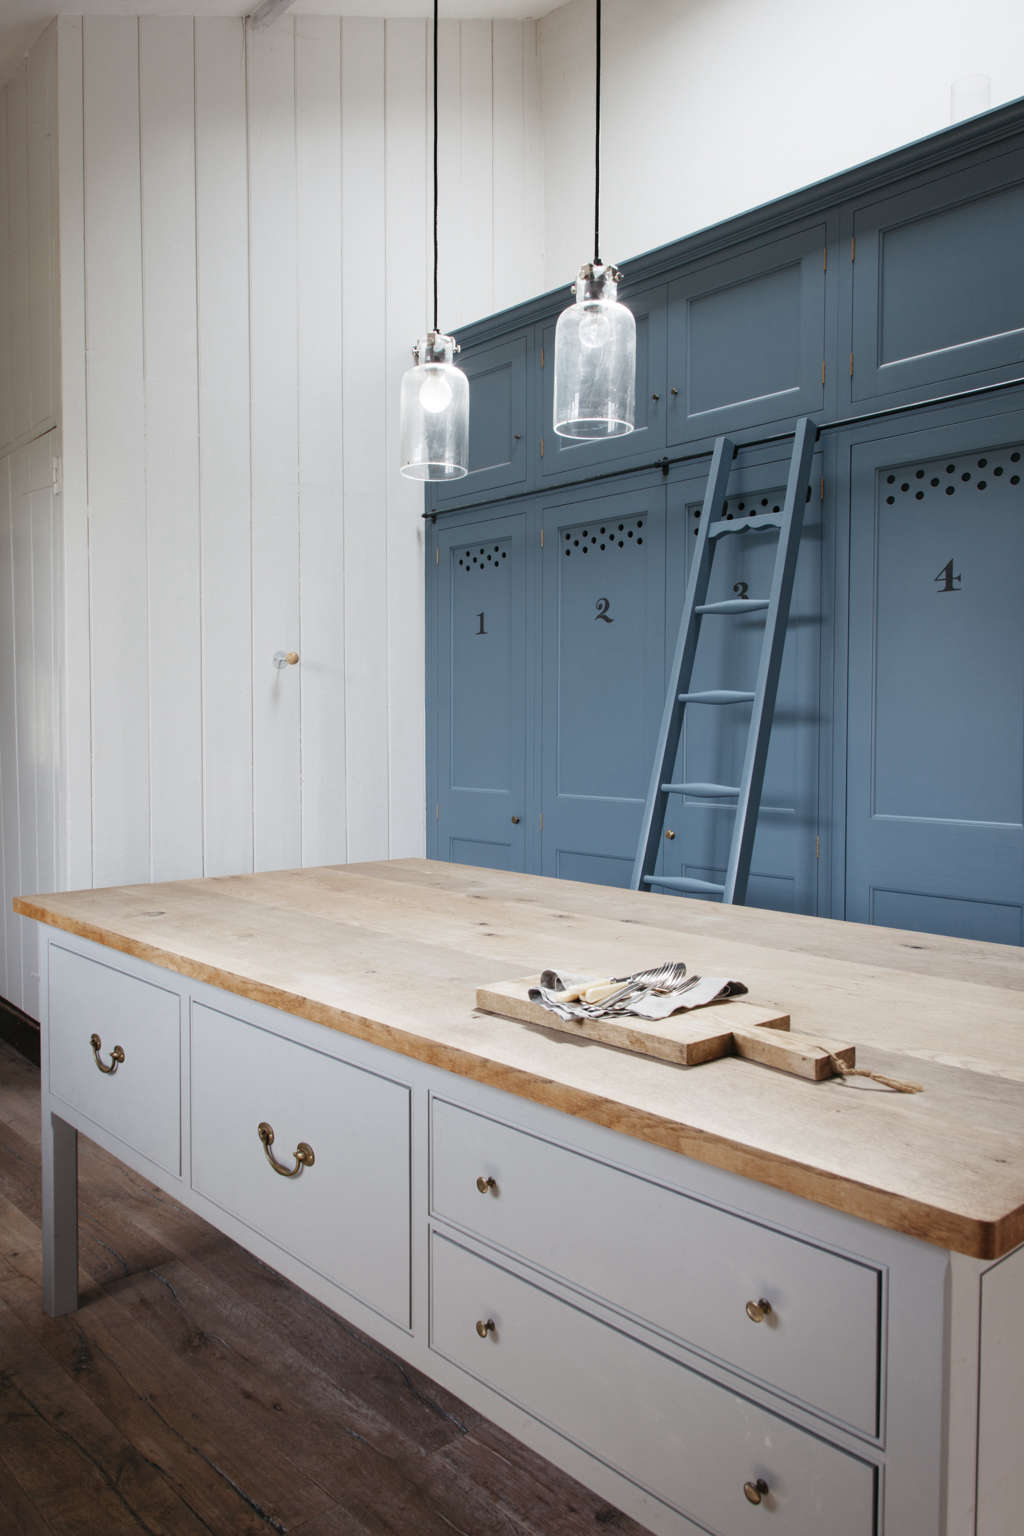 Kitchen of the Week: The Plain English Power in Numbers Kitchen ...